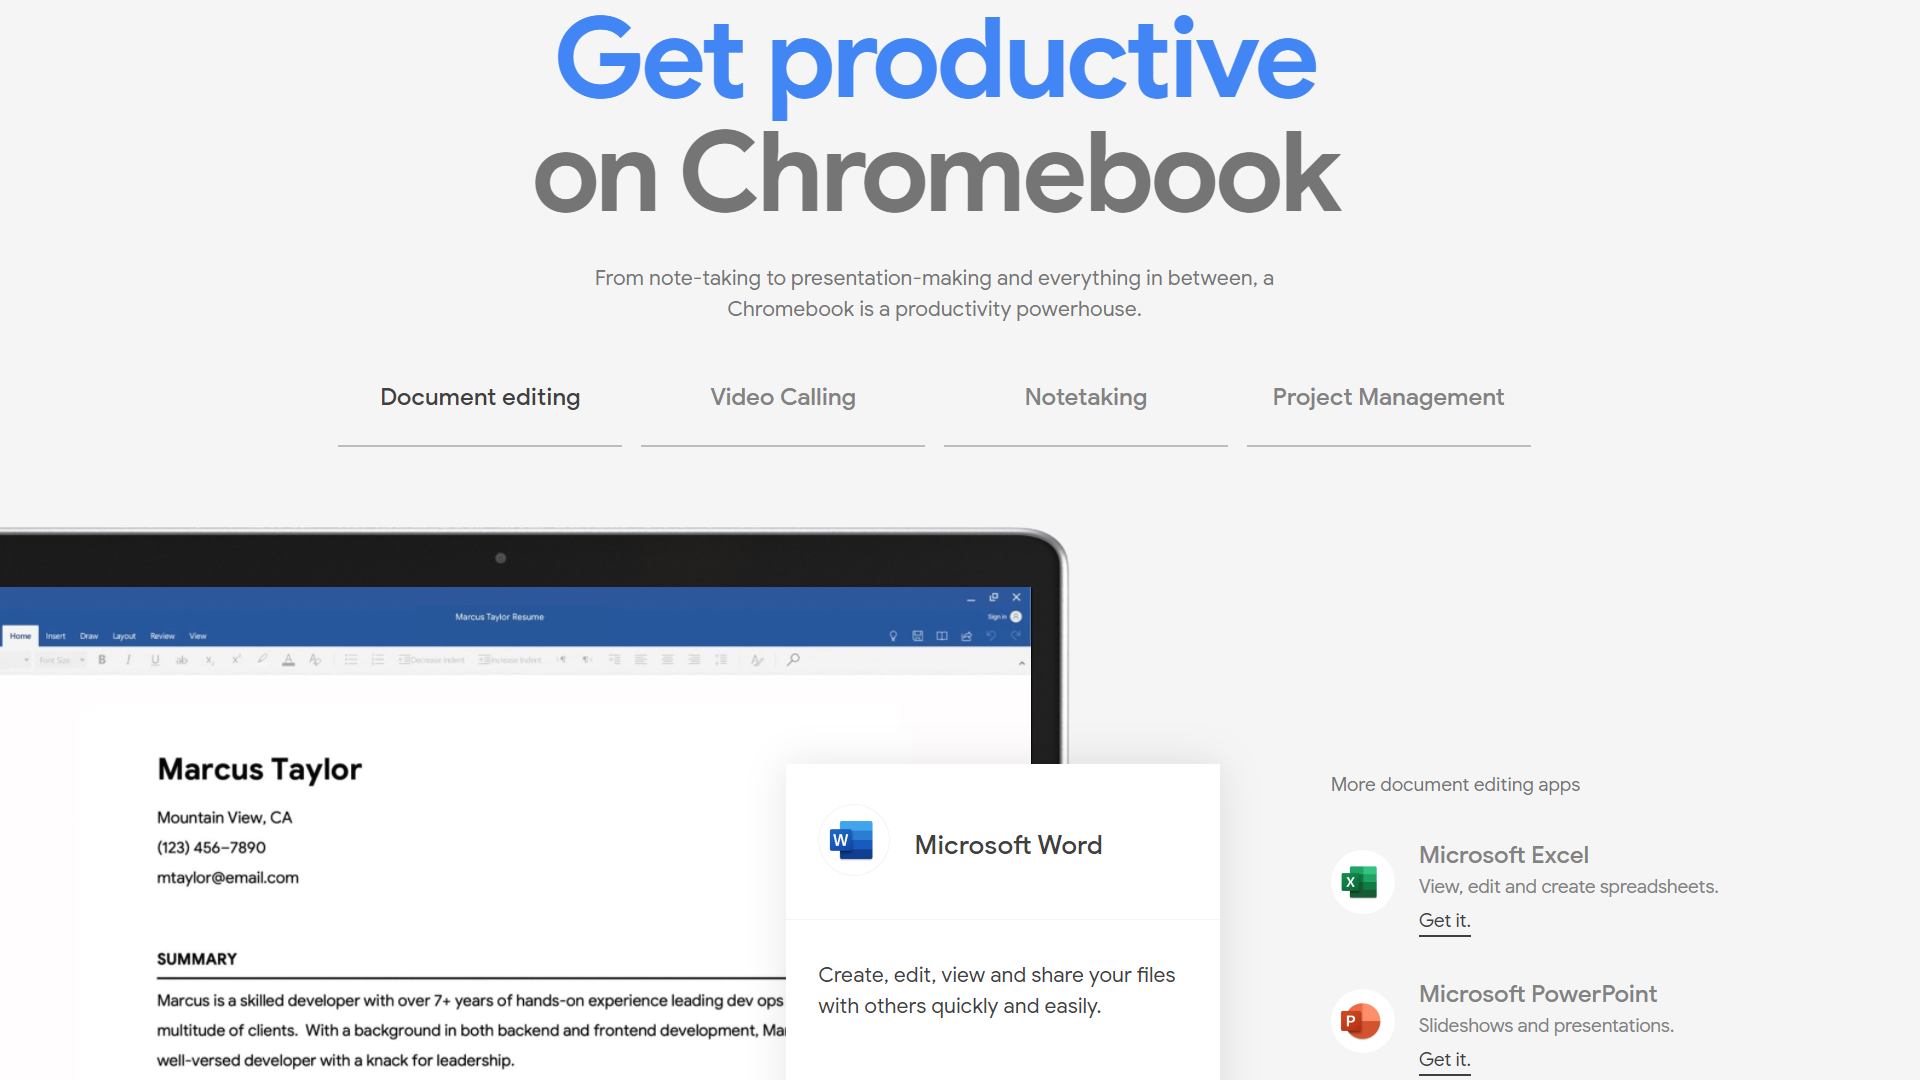 A promo image showing productivity software on Chrome OS